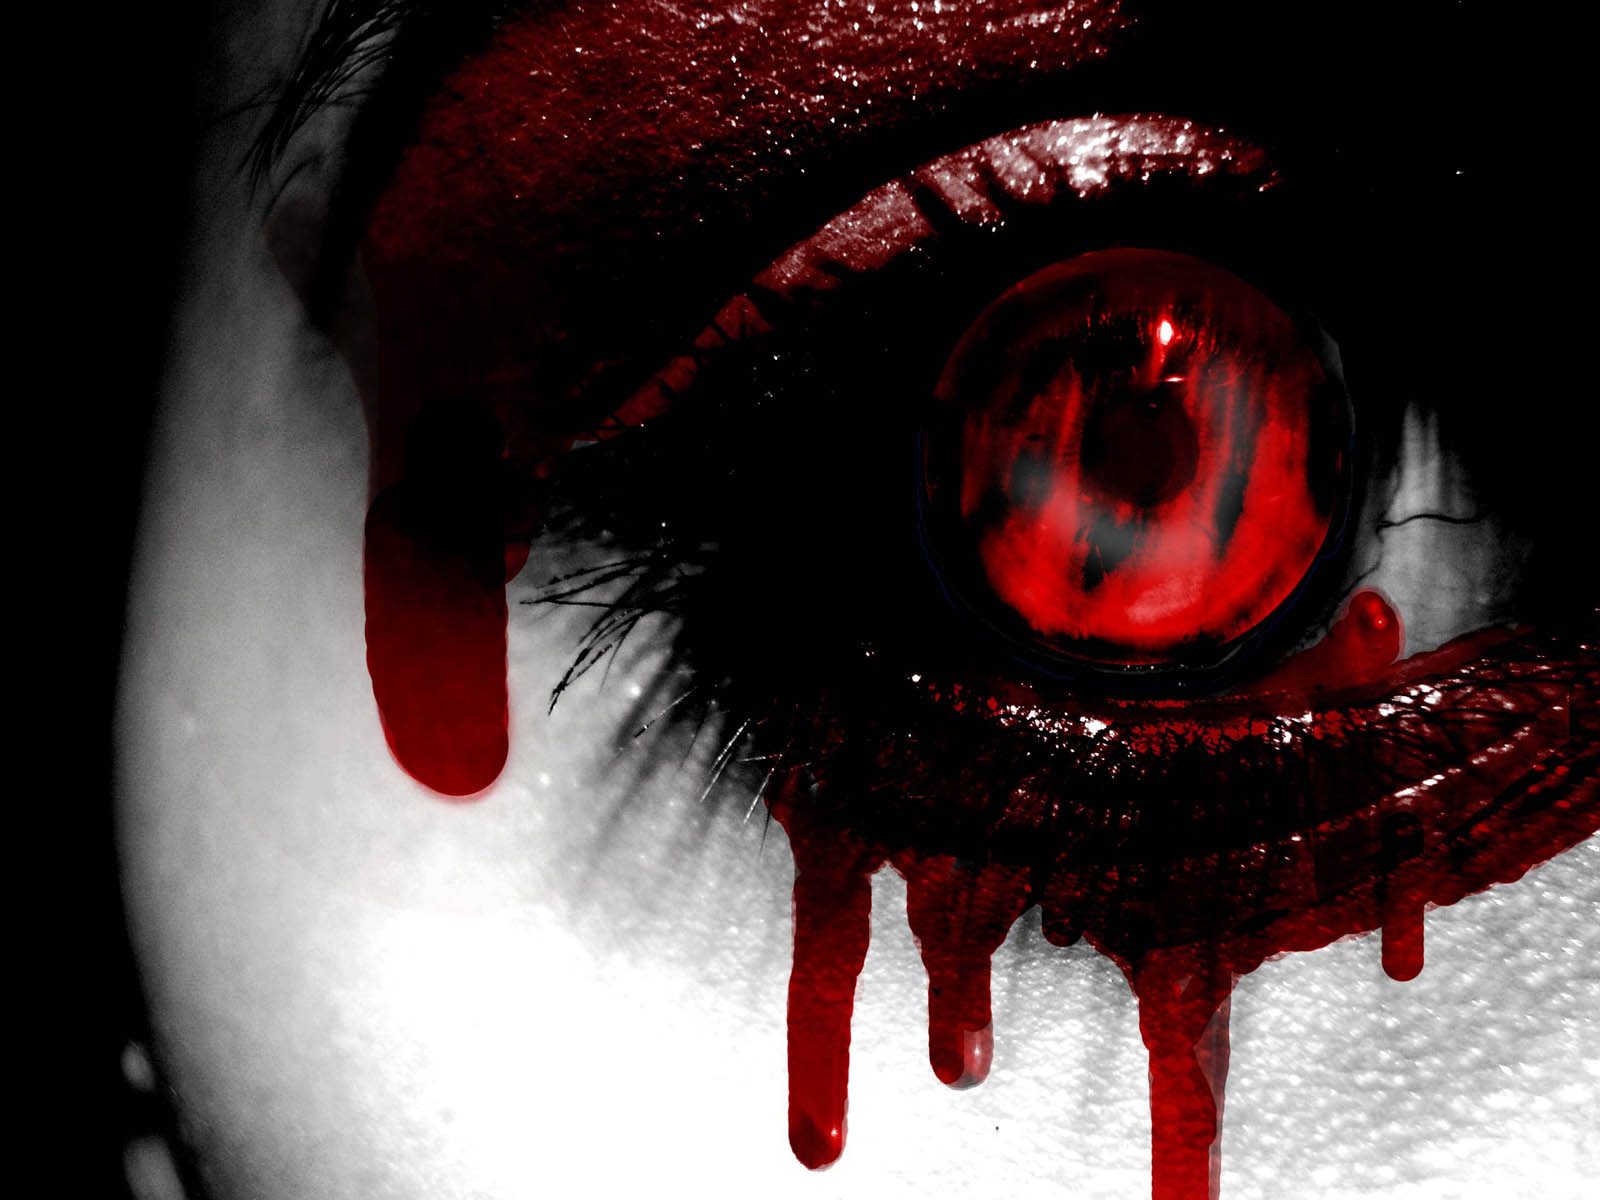 Keywords horror eye wallpapers horror eyedesktop wallpapers horror